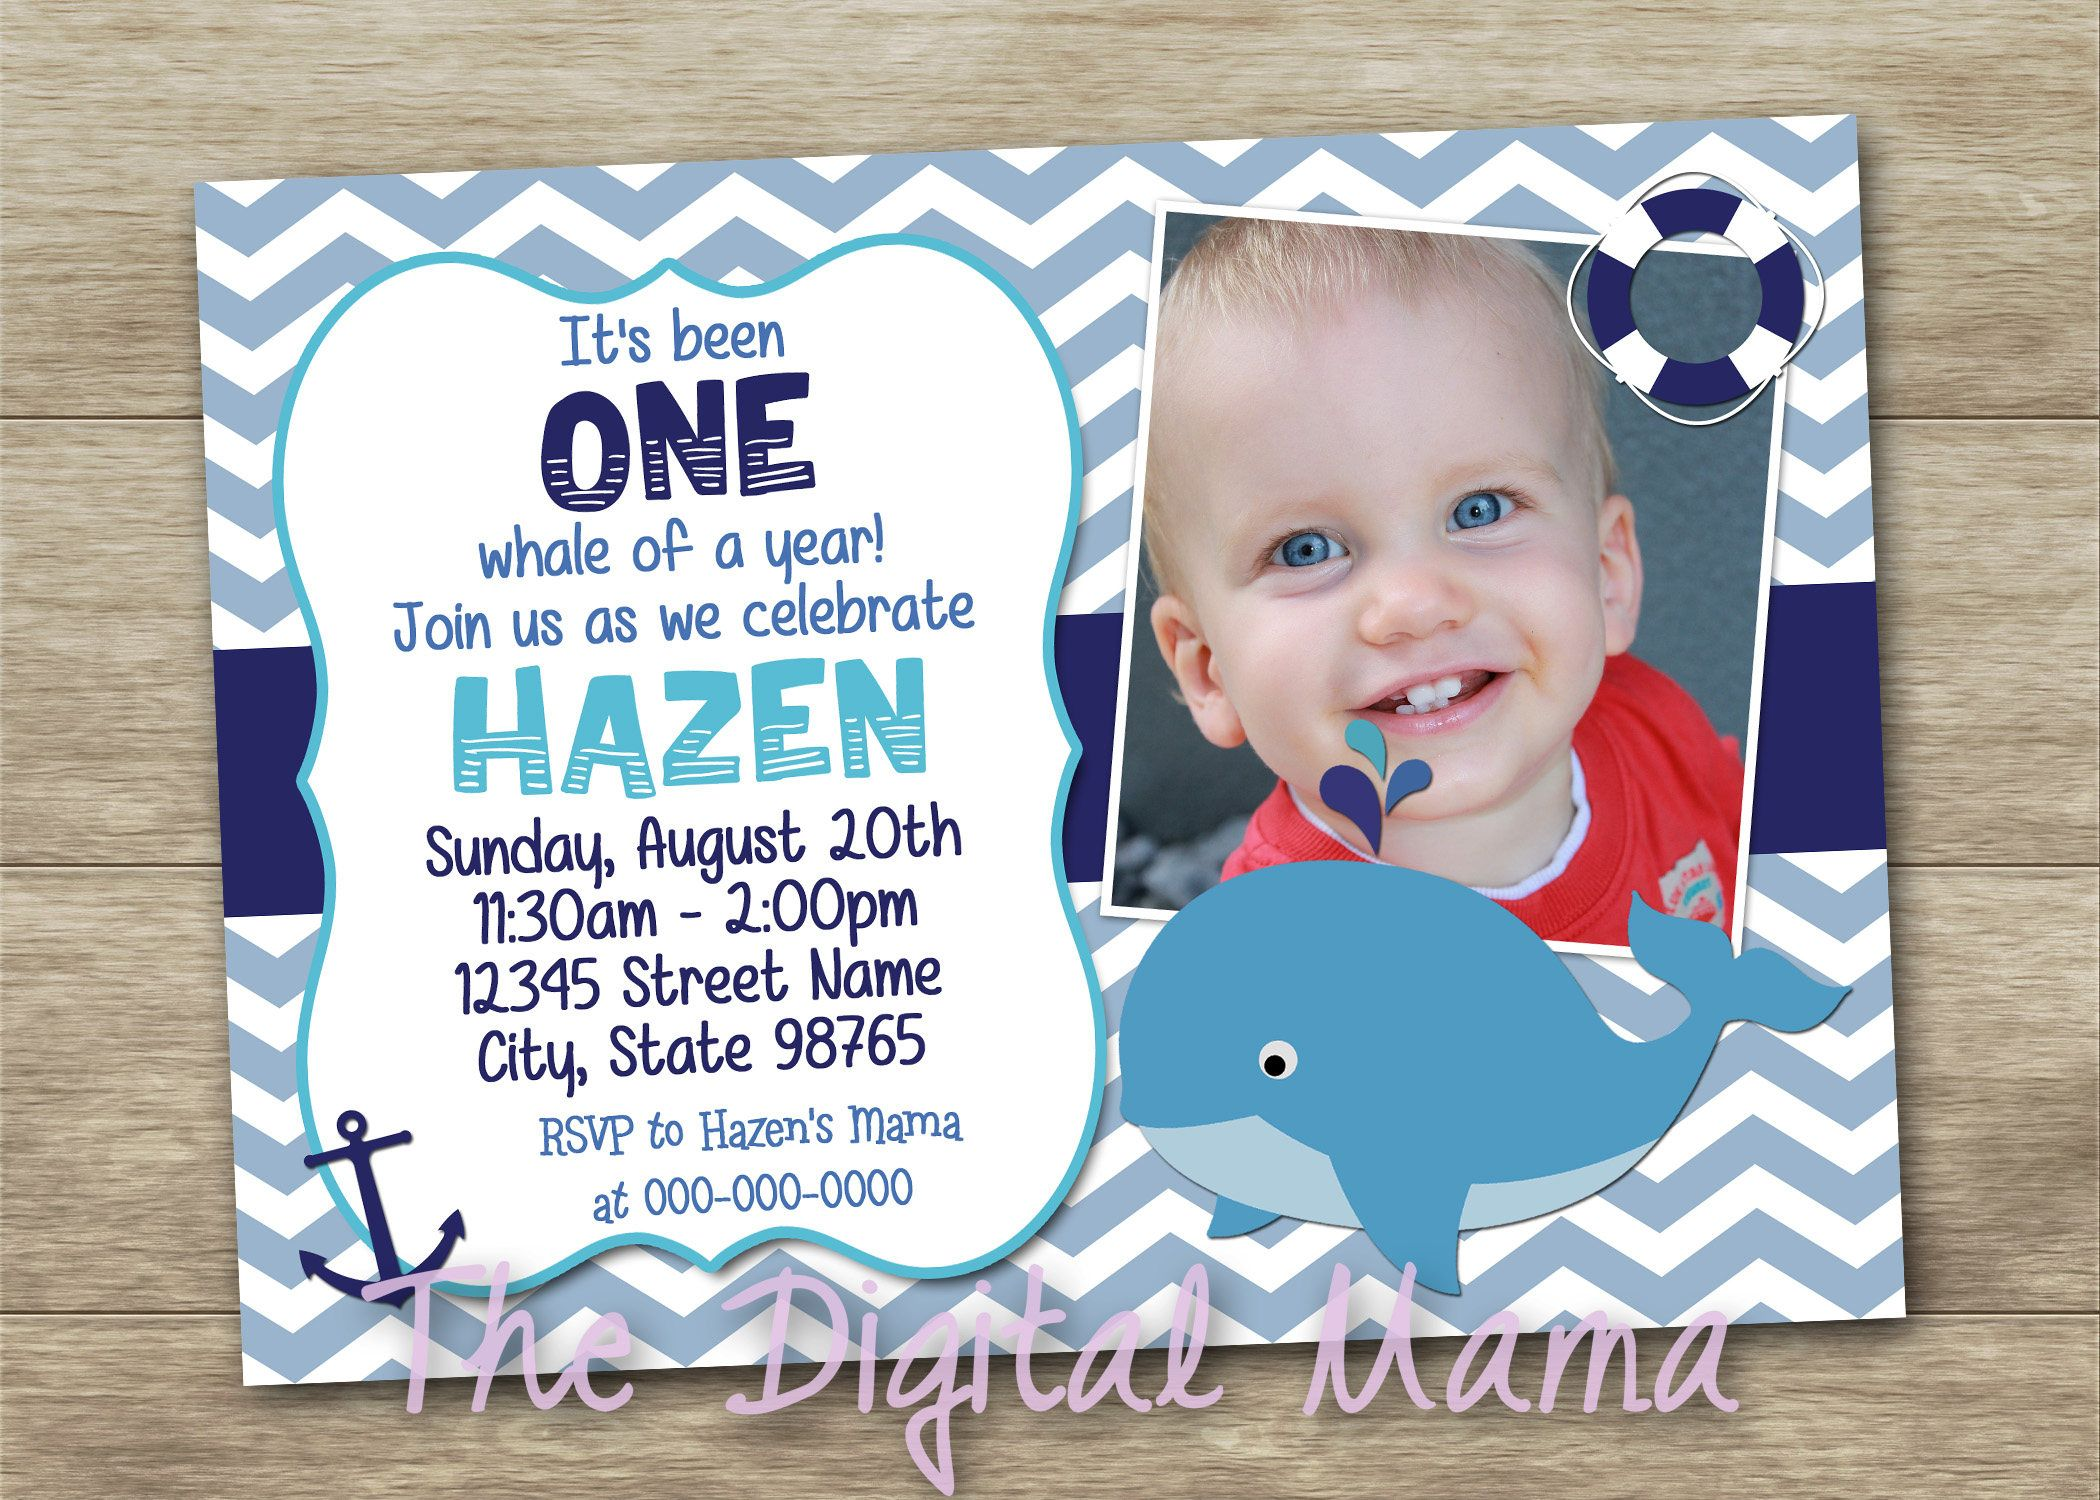 Whale Birthday Party Invitation 1 Year Old Whale Birthday Nautical Birthday Invitation Whale Birthday Parties Whale Birthday Nautical Birthday Invitations